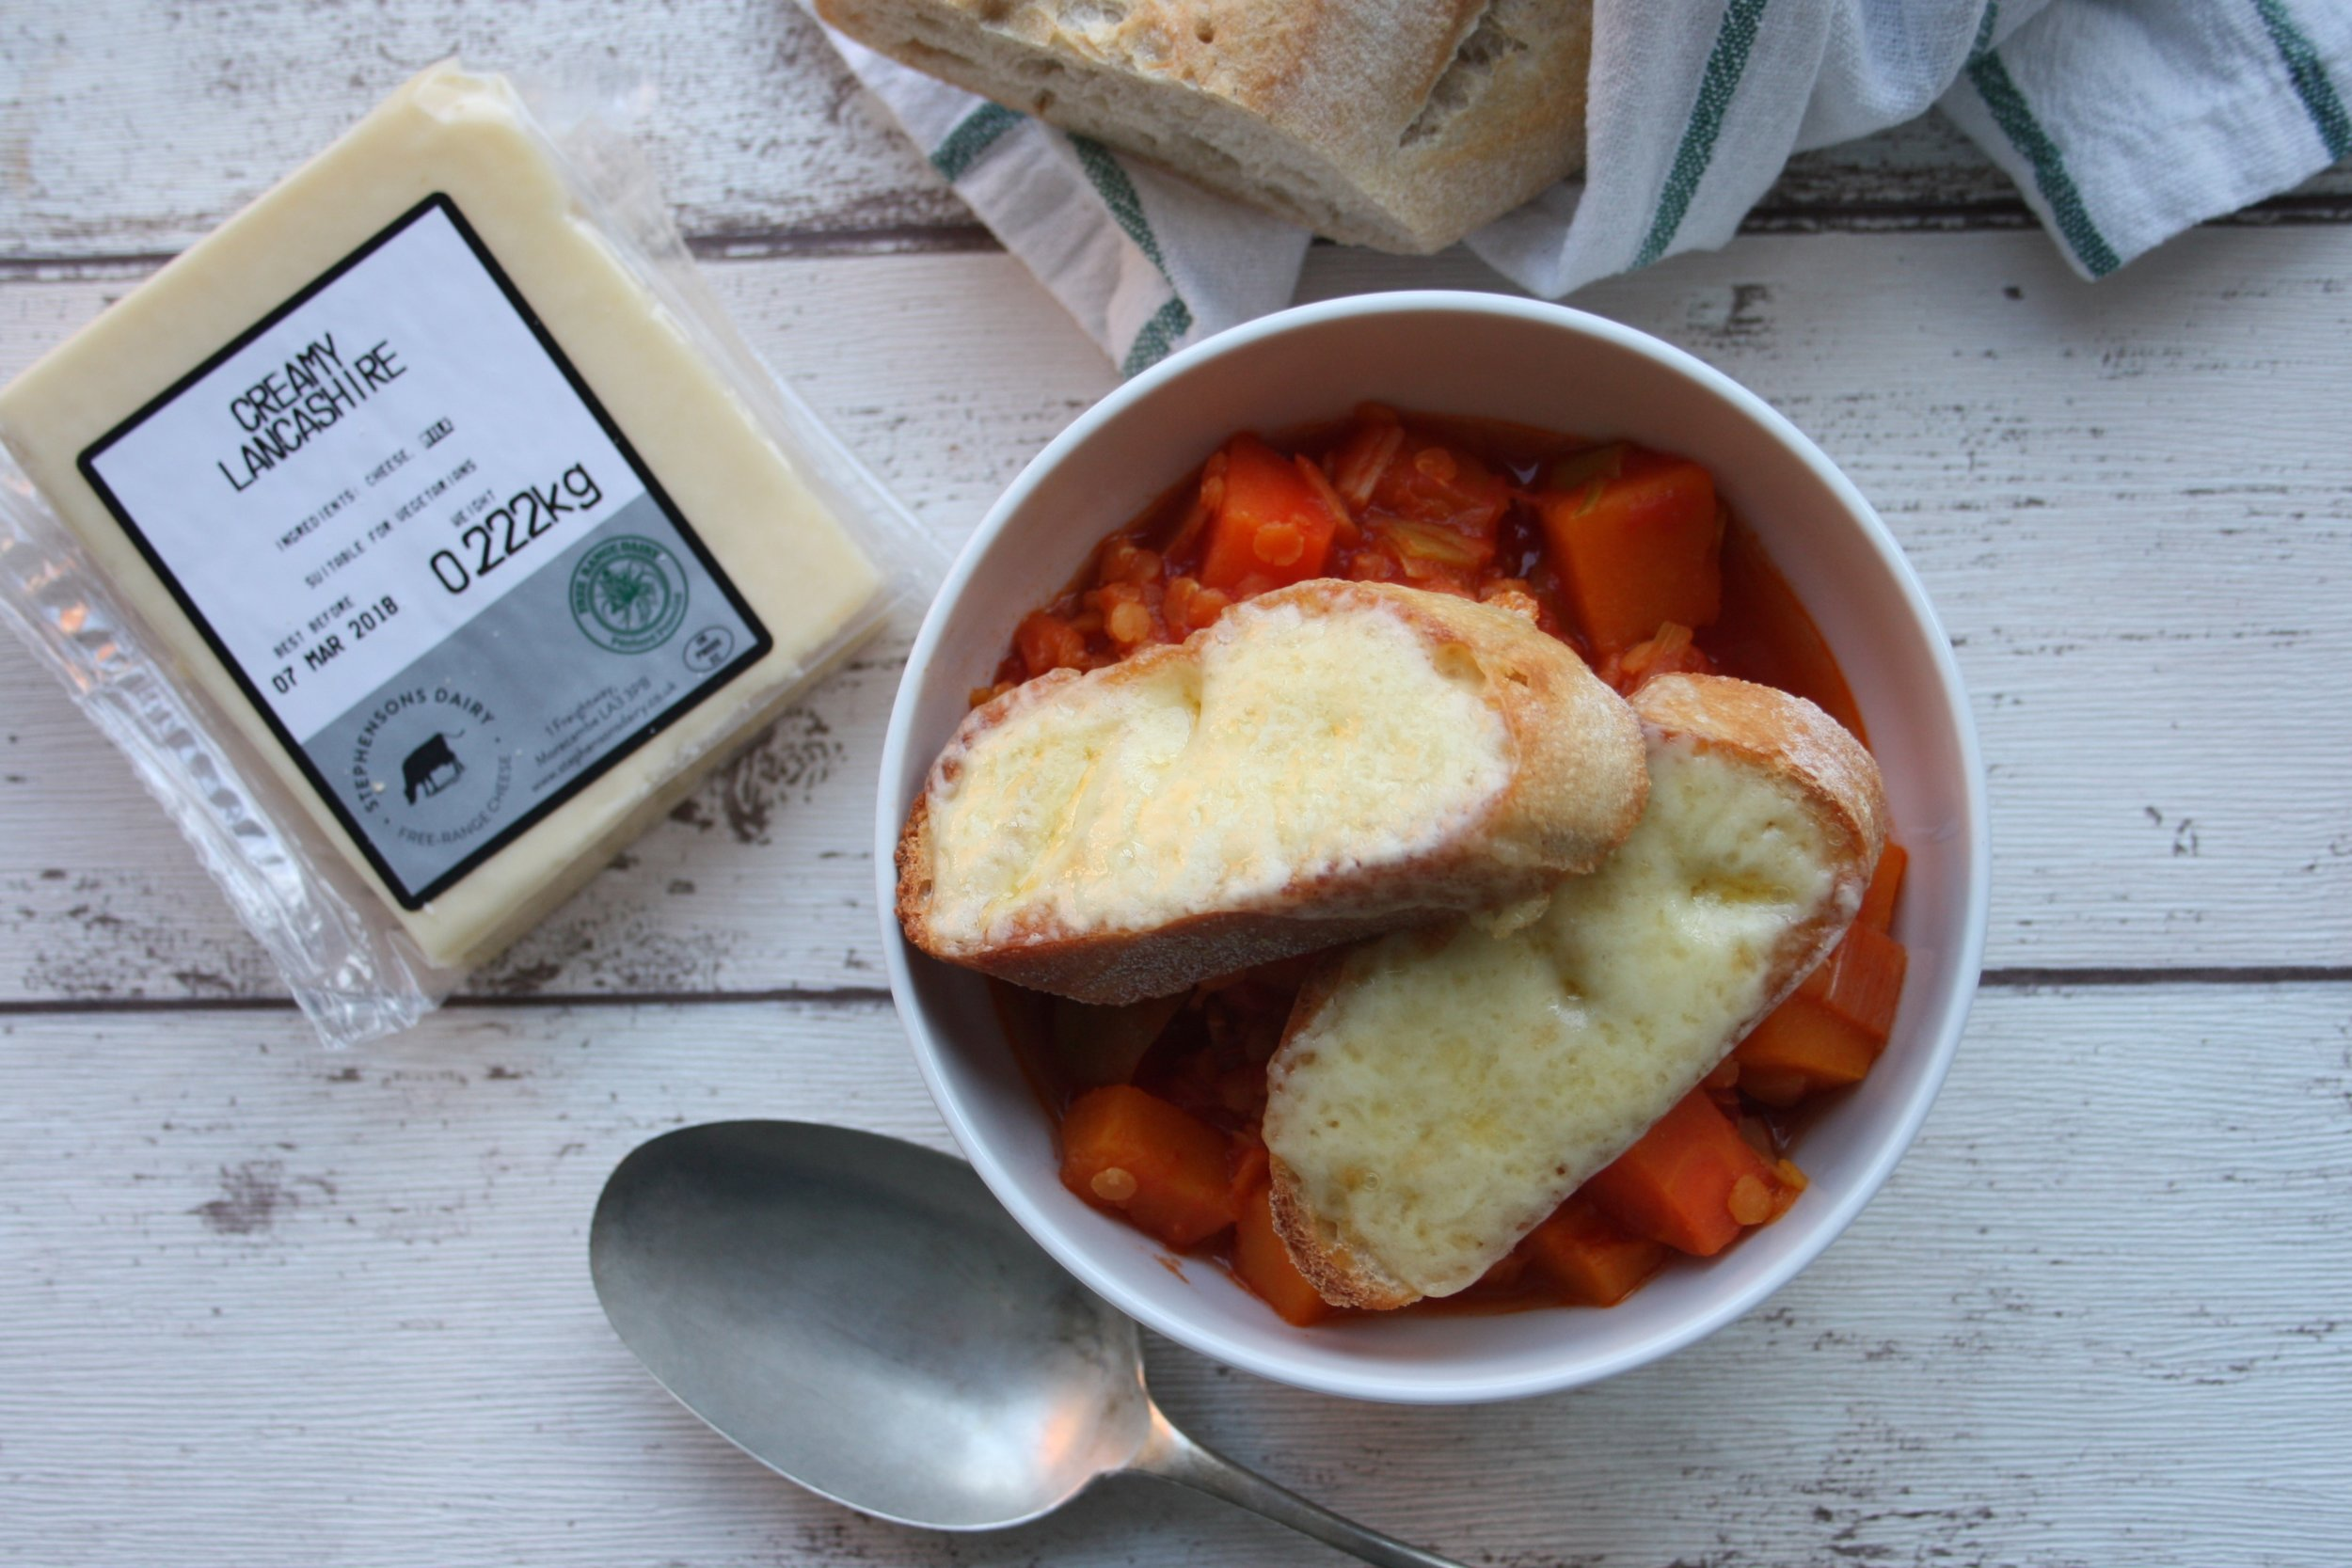 Vegetable Stew with Giant Lancashire Croutons - Serves 4-6For the stew:1 tablespoon olive oil1 clove garlic, crushed (optional)1 onion2 large carrots2 leeks 500g butternut squash1 x 400g tin tomatoes75g red split lentils (rinsed)500ml vegetable stockFor the croutons:1 baguette250g Stephensons Creamy LancashireMethod1. Cut all the vegetables into 1-2cm chunks.2. Heat the oil in a large lidded pan. Add the vegetables (including garlic, if using)and cook, stirring occasionally for 5 minutes. Add all the other ingredients, bring to the boil and simmer gently with the lid on until thickened and the vegetables are tender. This will take 20-35 minutes, depending on the size of your vegetables. Add more water if too thick.3. Meanwhile, prepare the giant croutons by cutting the baguette into 2cm slices and toast lightly. Top with generous slabs of Stephensons Creamy Lancashire.4. Just before serving, grill the croutons and place the desired number of croutons per serving on top of the stew. Make plenty as they are very moreish!